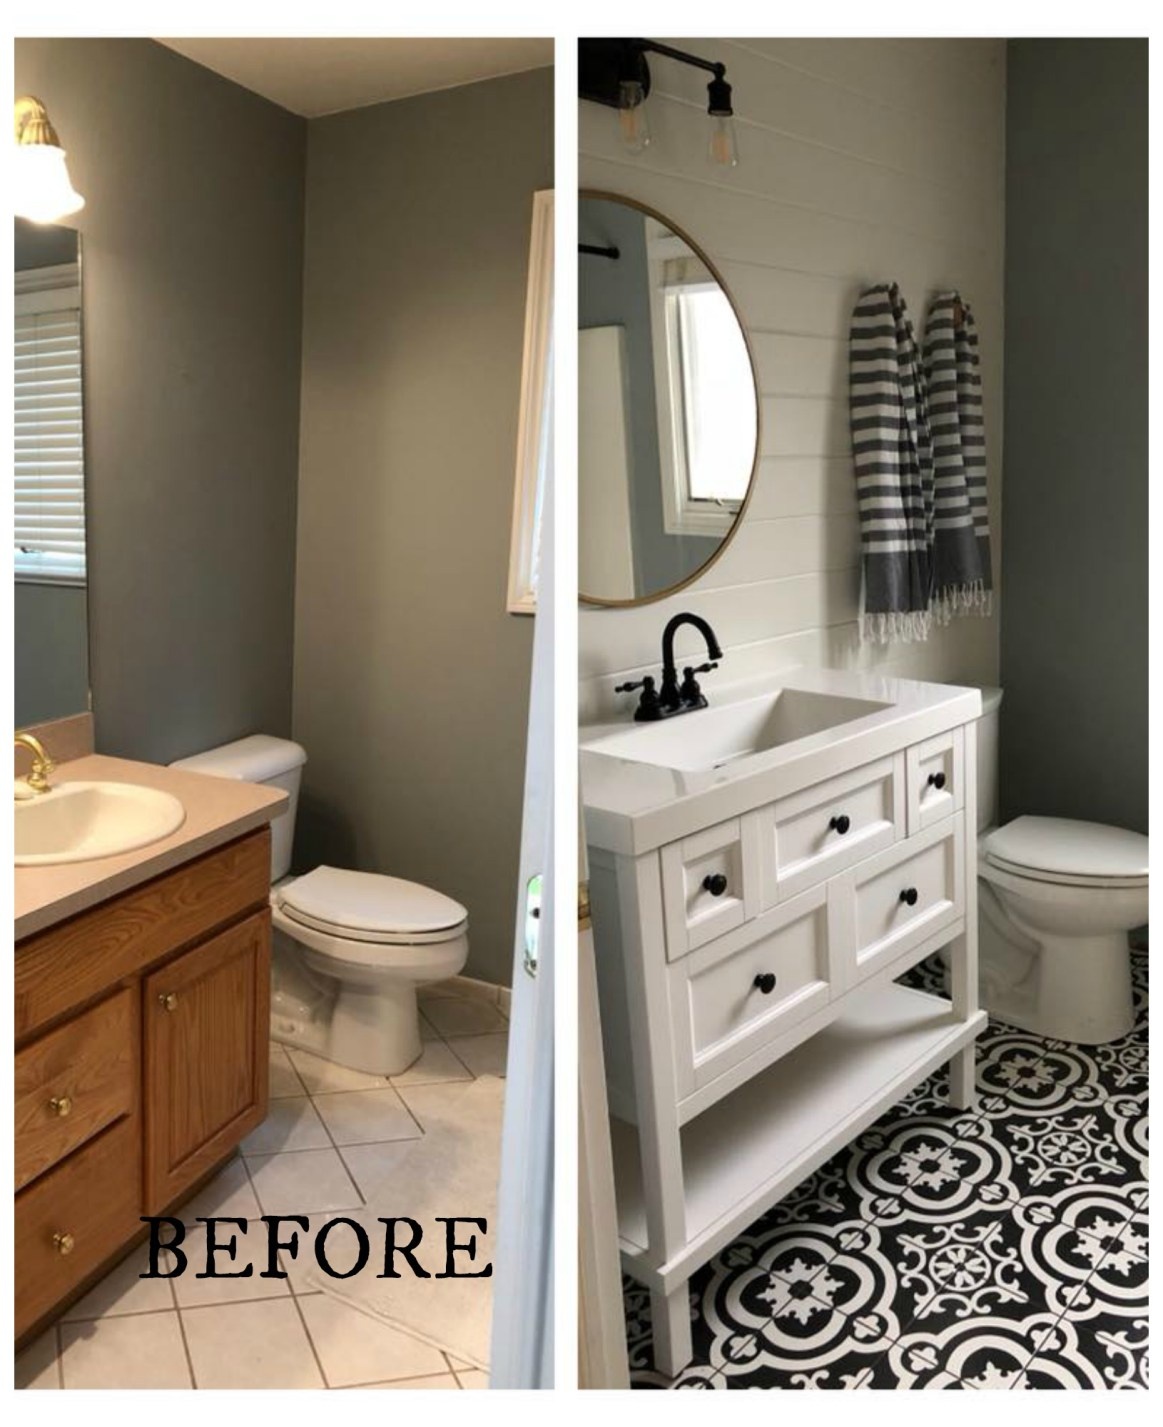 Images Bathrooms Makeovers: 20 Bathroom Makeovers- Before And Afters